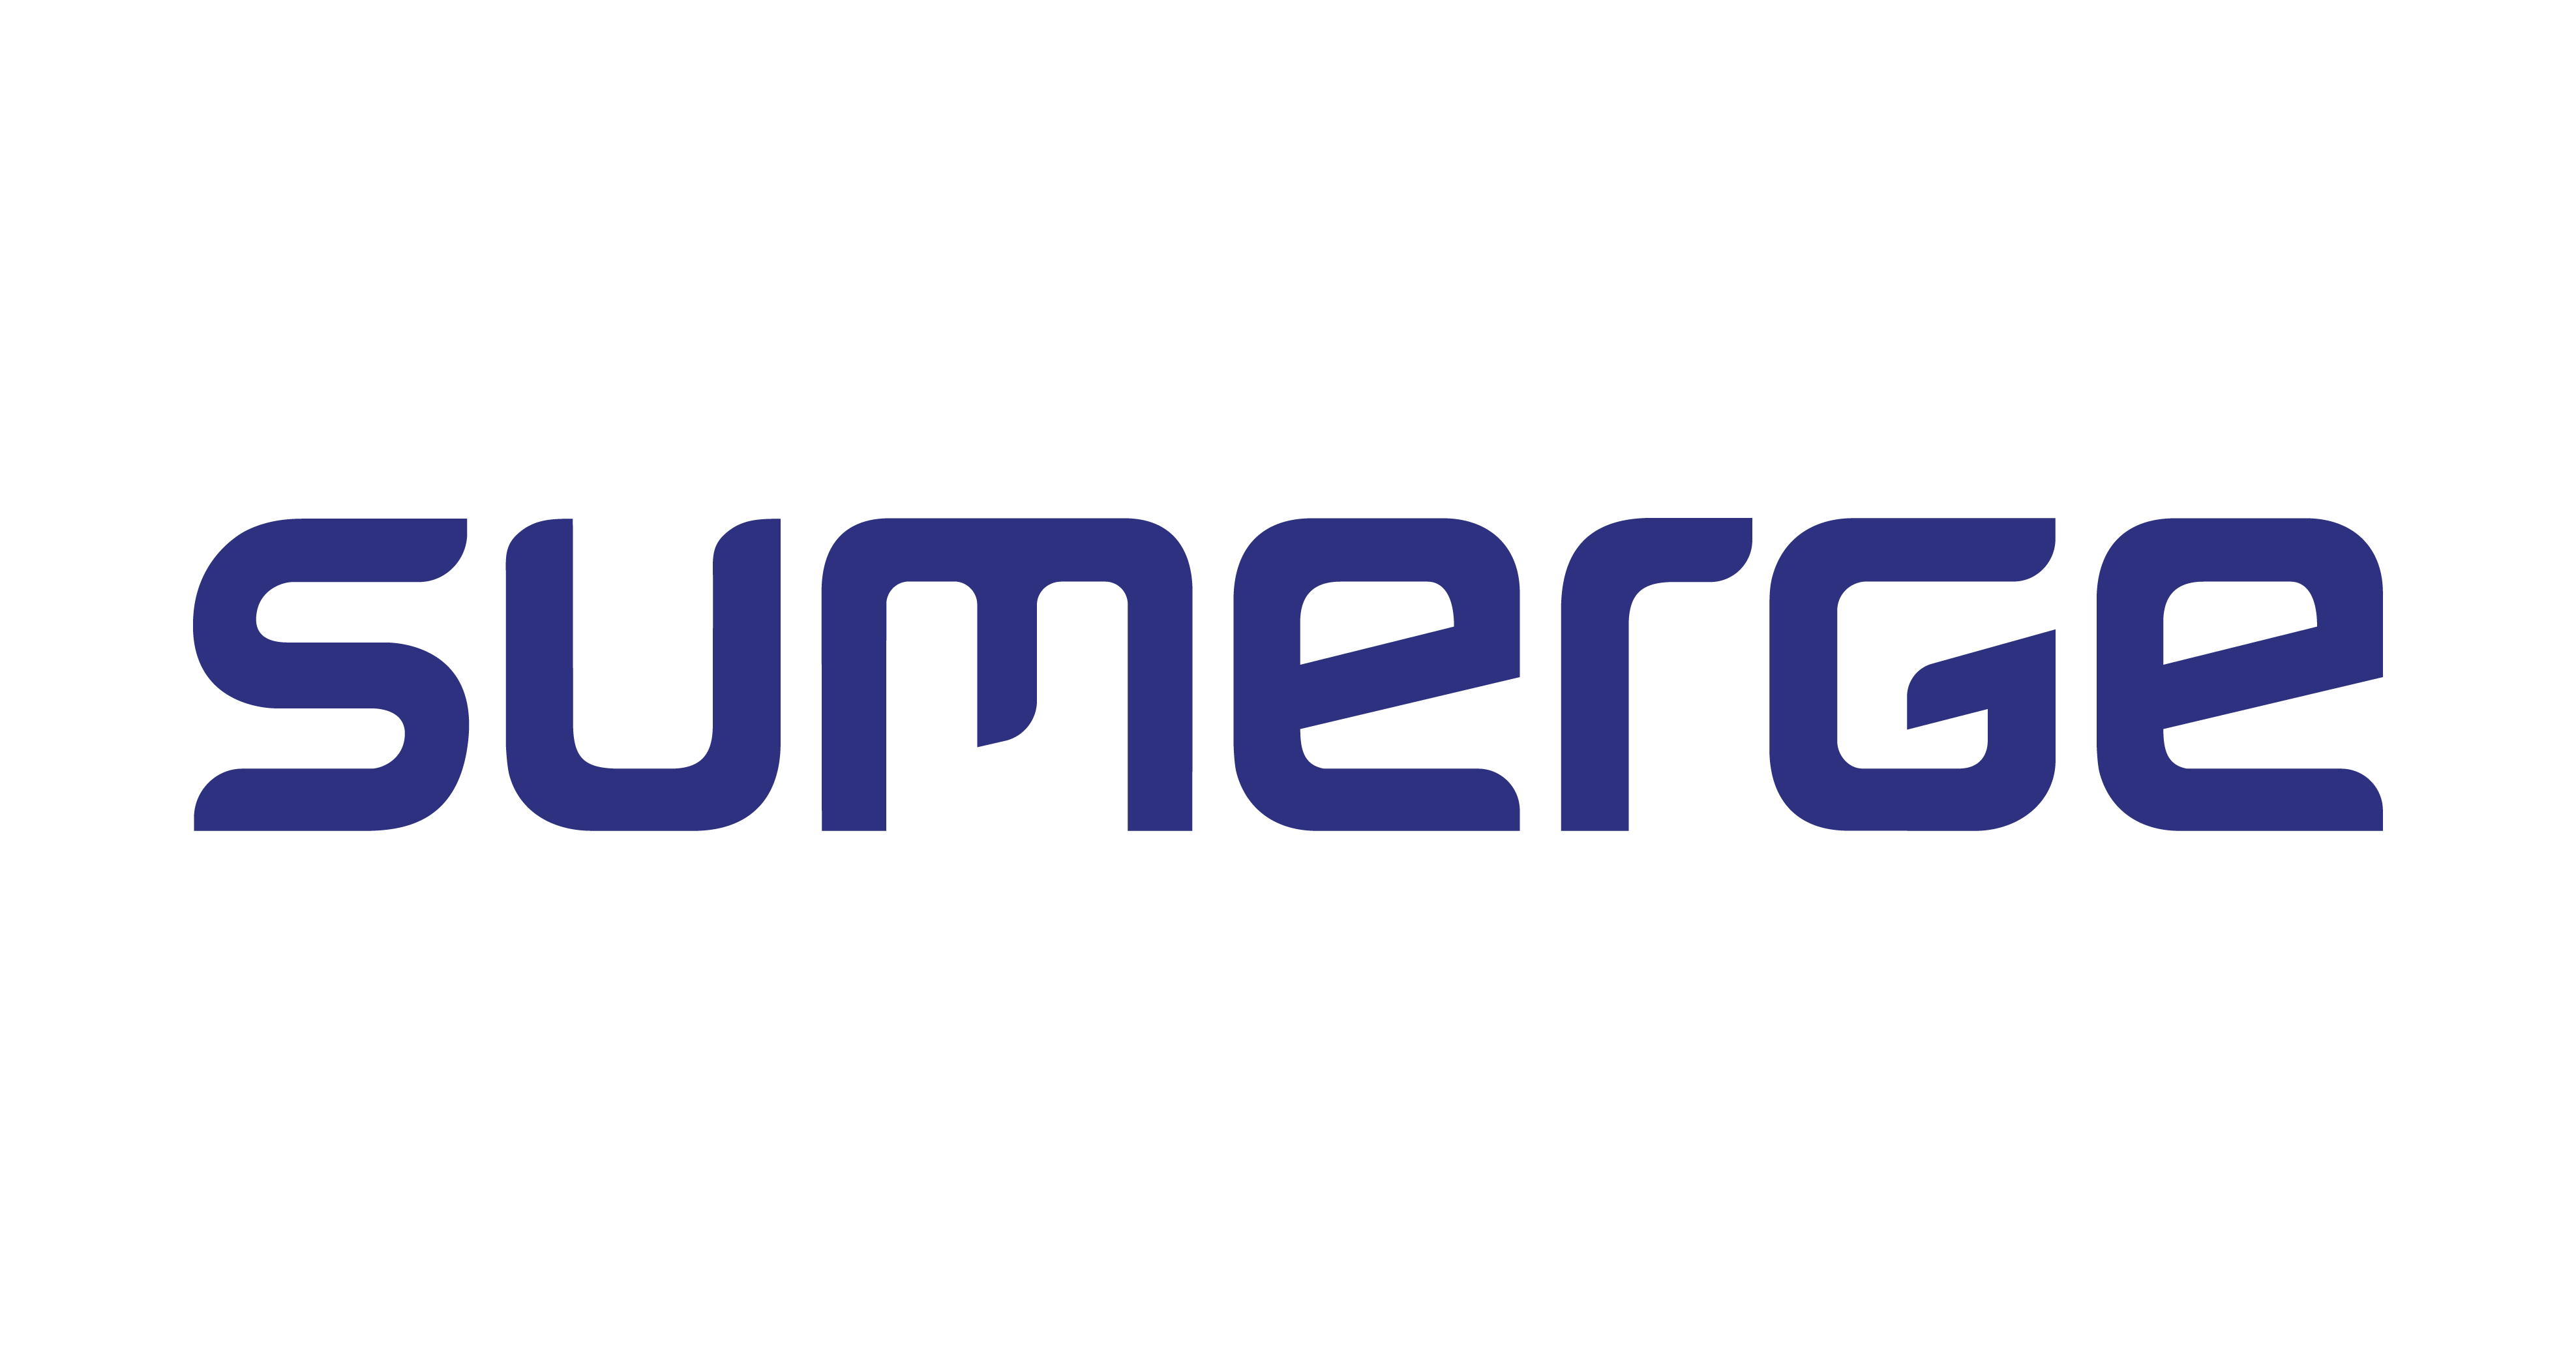 Job: Associate Business Analyst at Sumerge in Cairo, Egypt